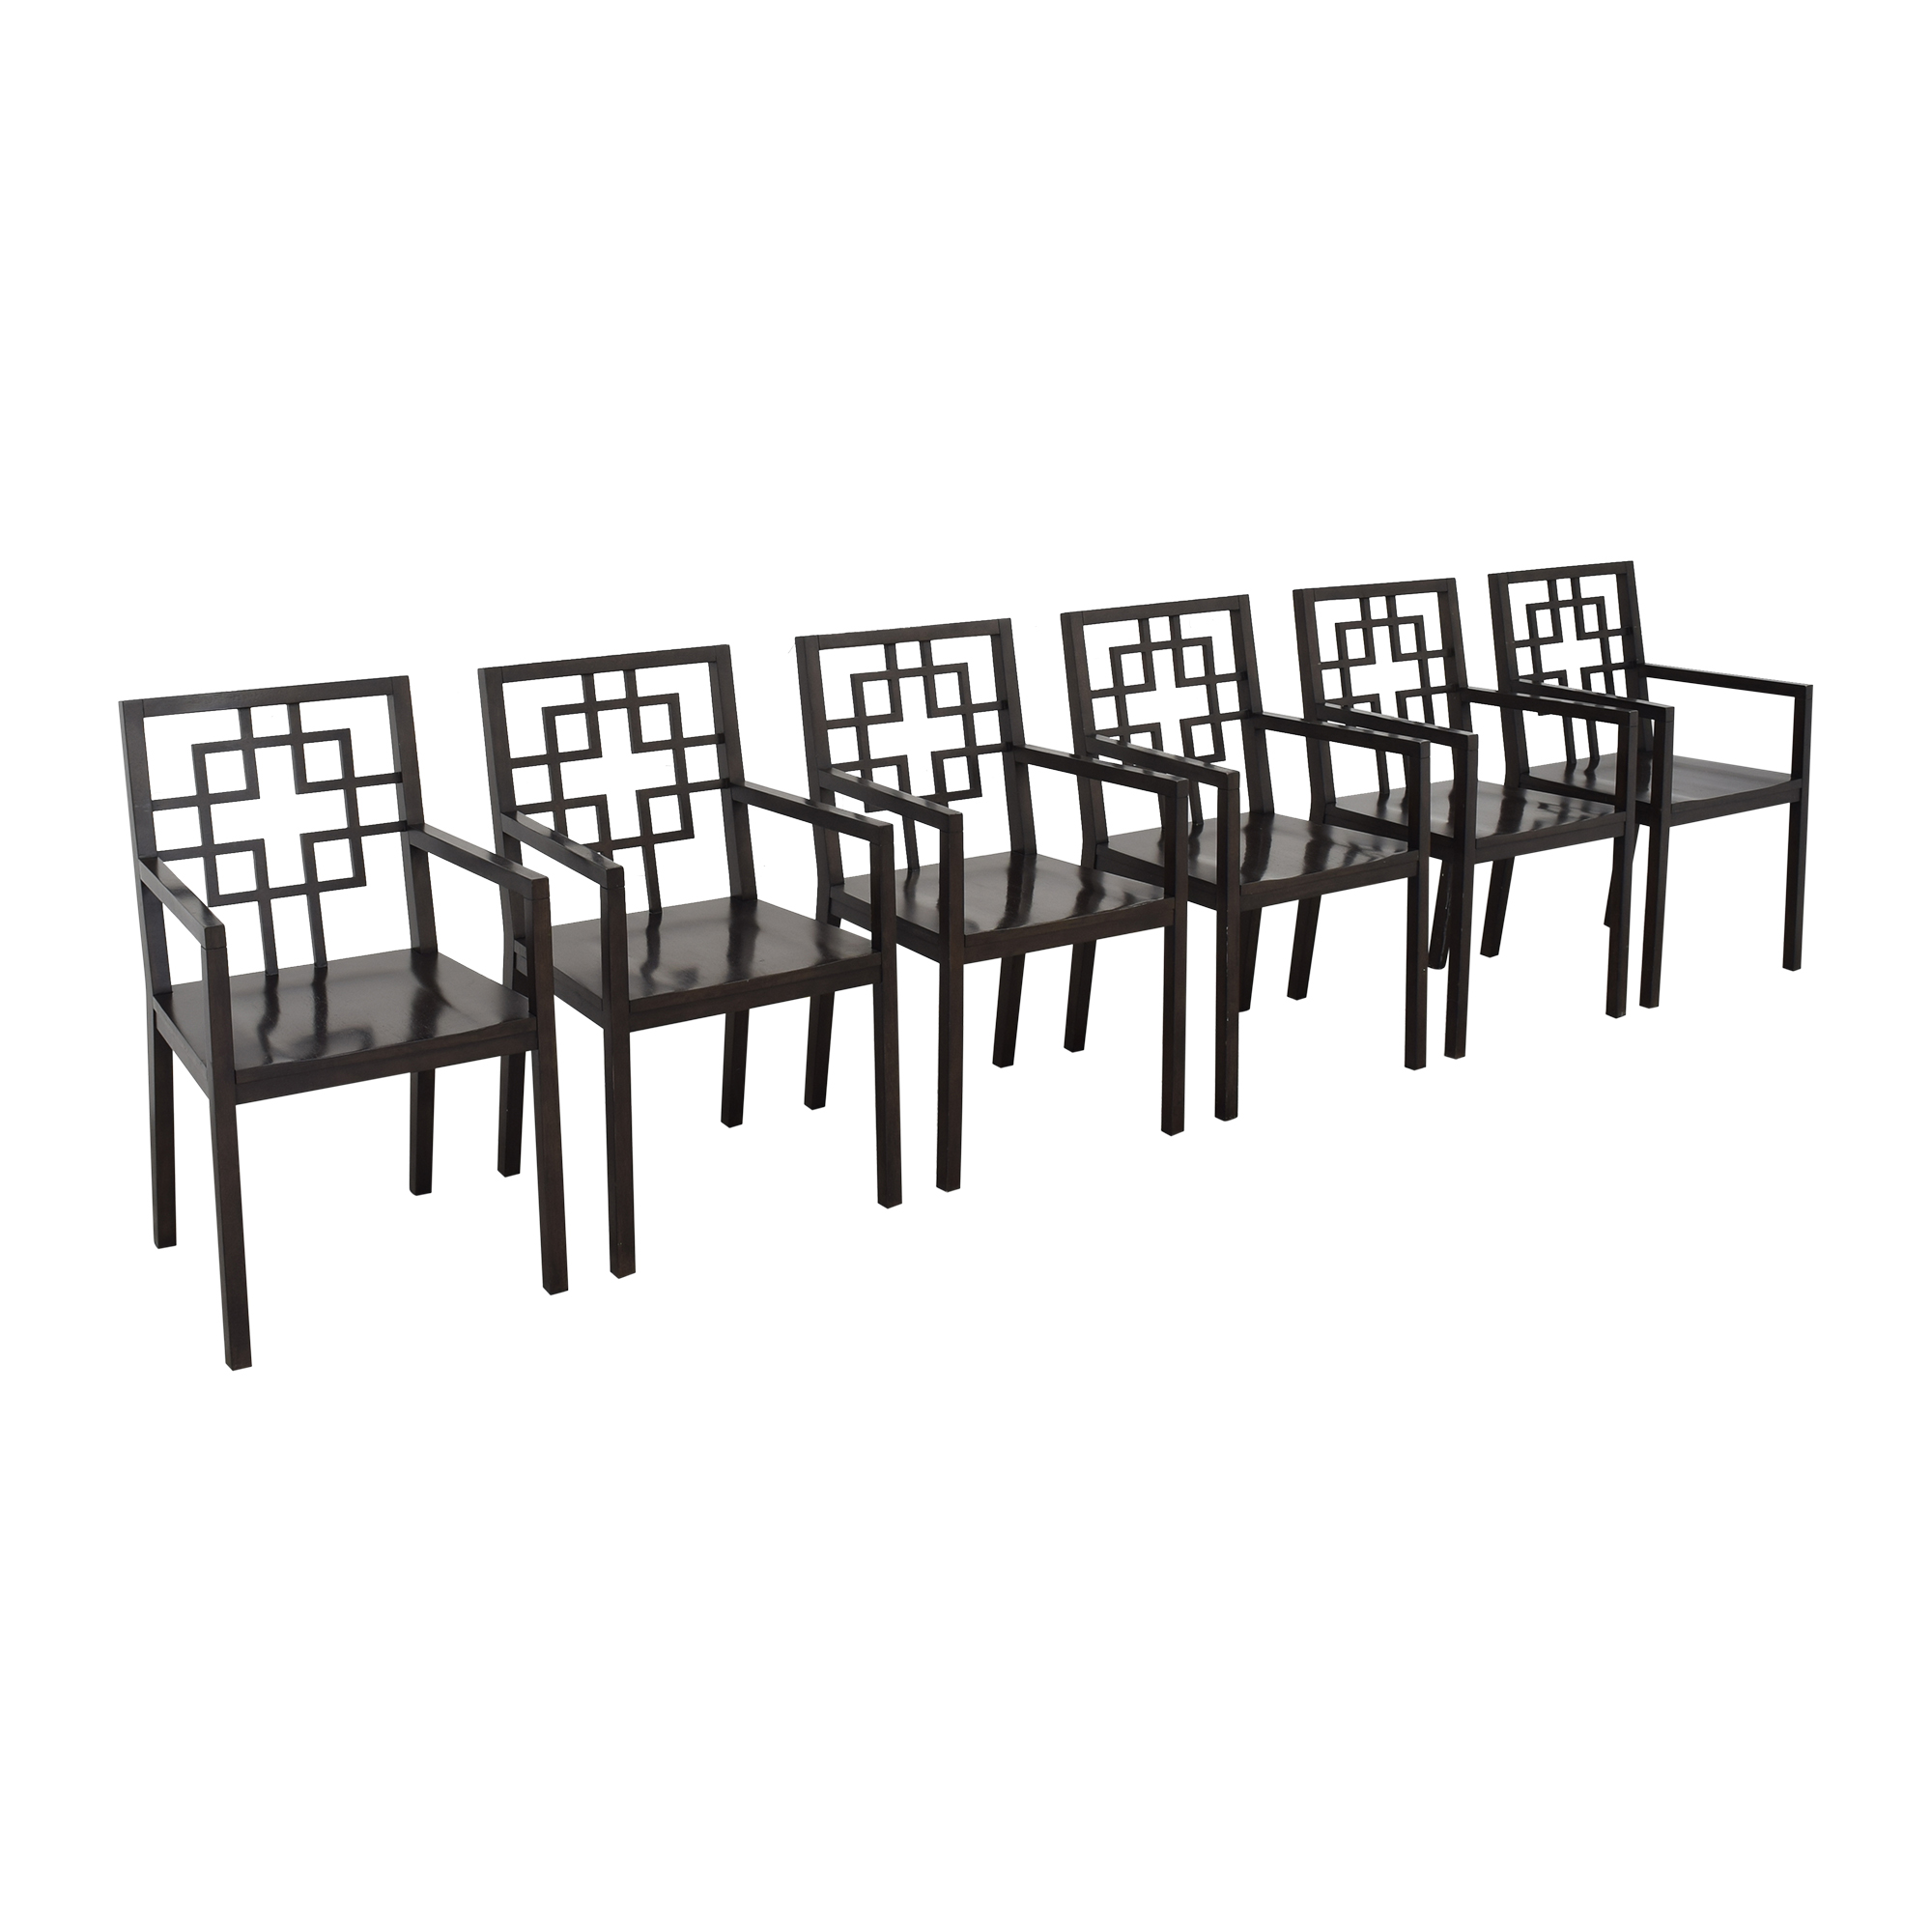 West Elm West Elm Overlapping Squares Dining Chairs Chairs